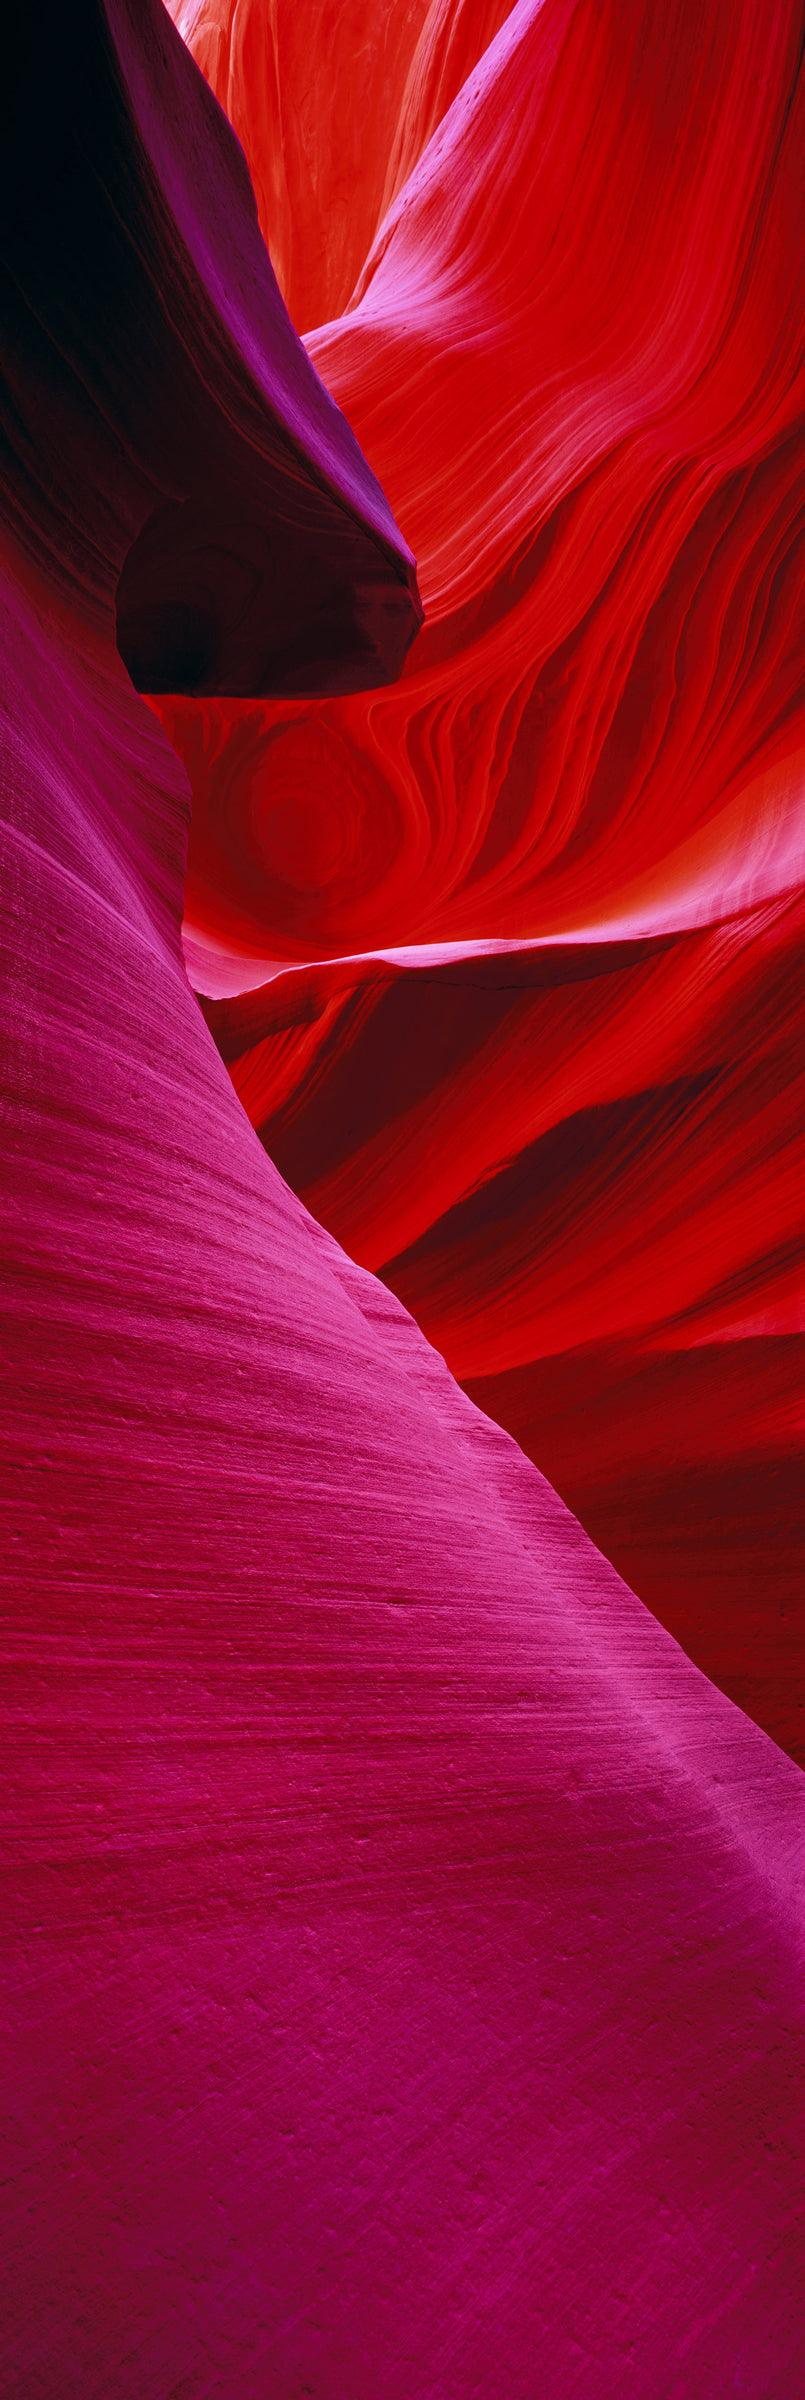 Red and pink sandstone walls of the slot canyons in Antelope Canyon Arizona